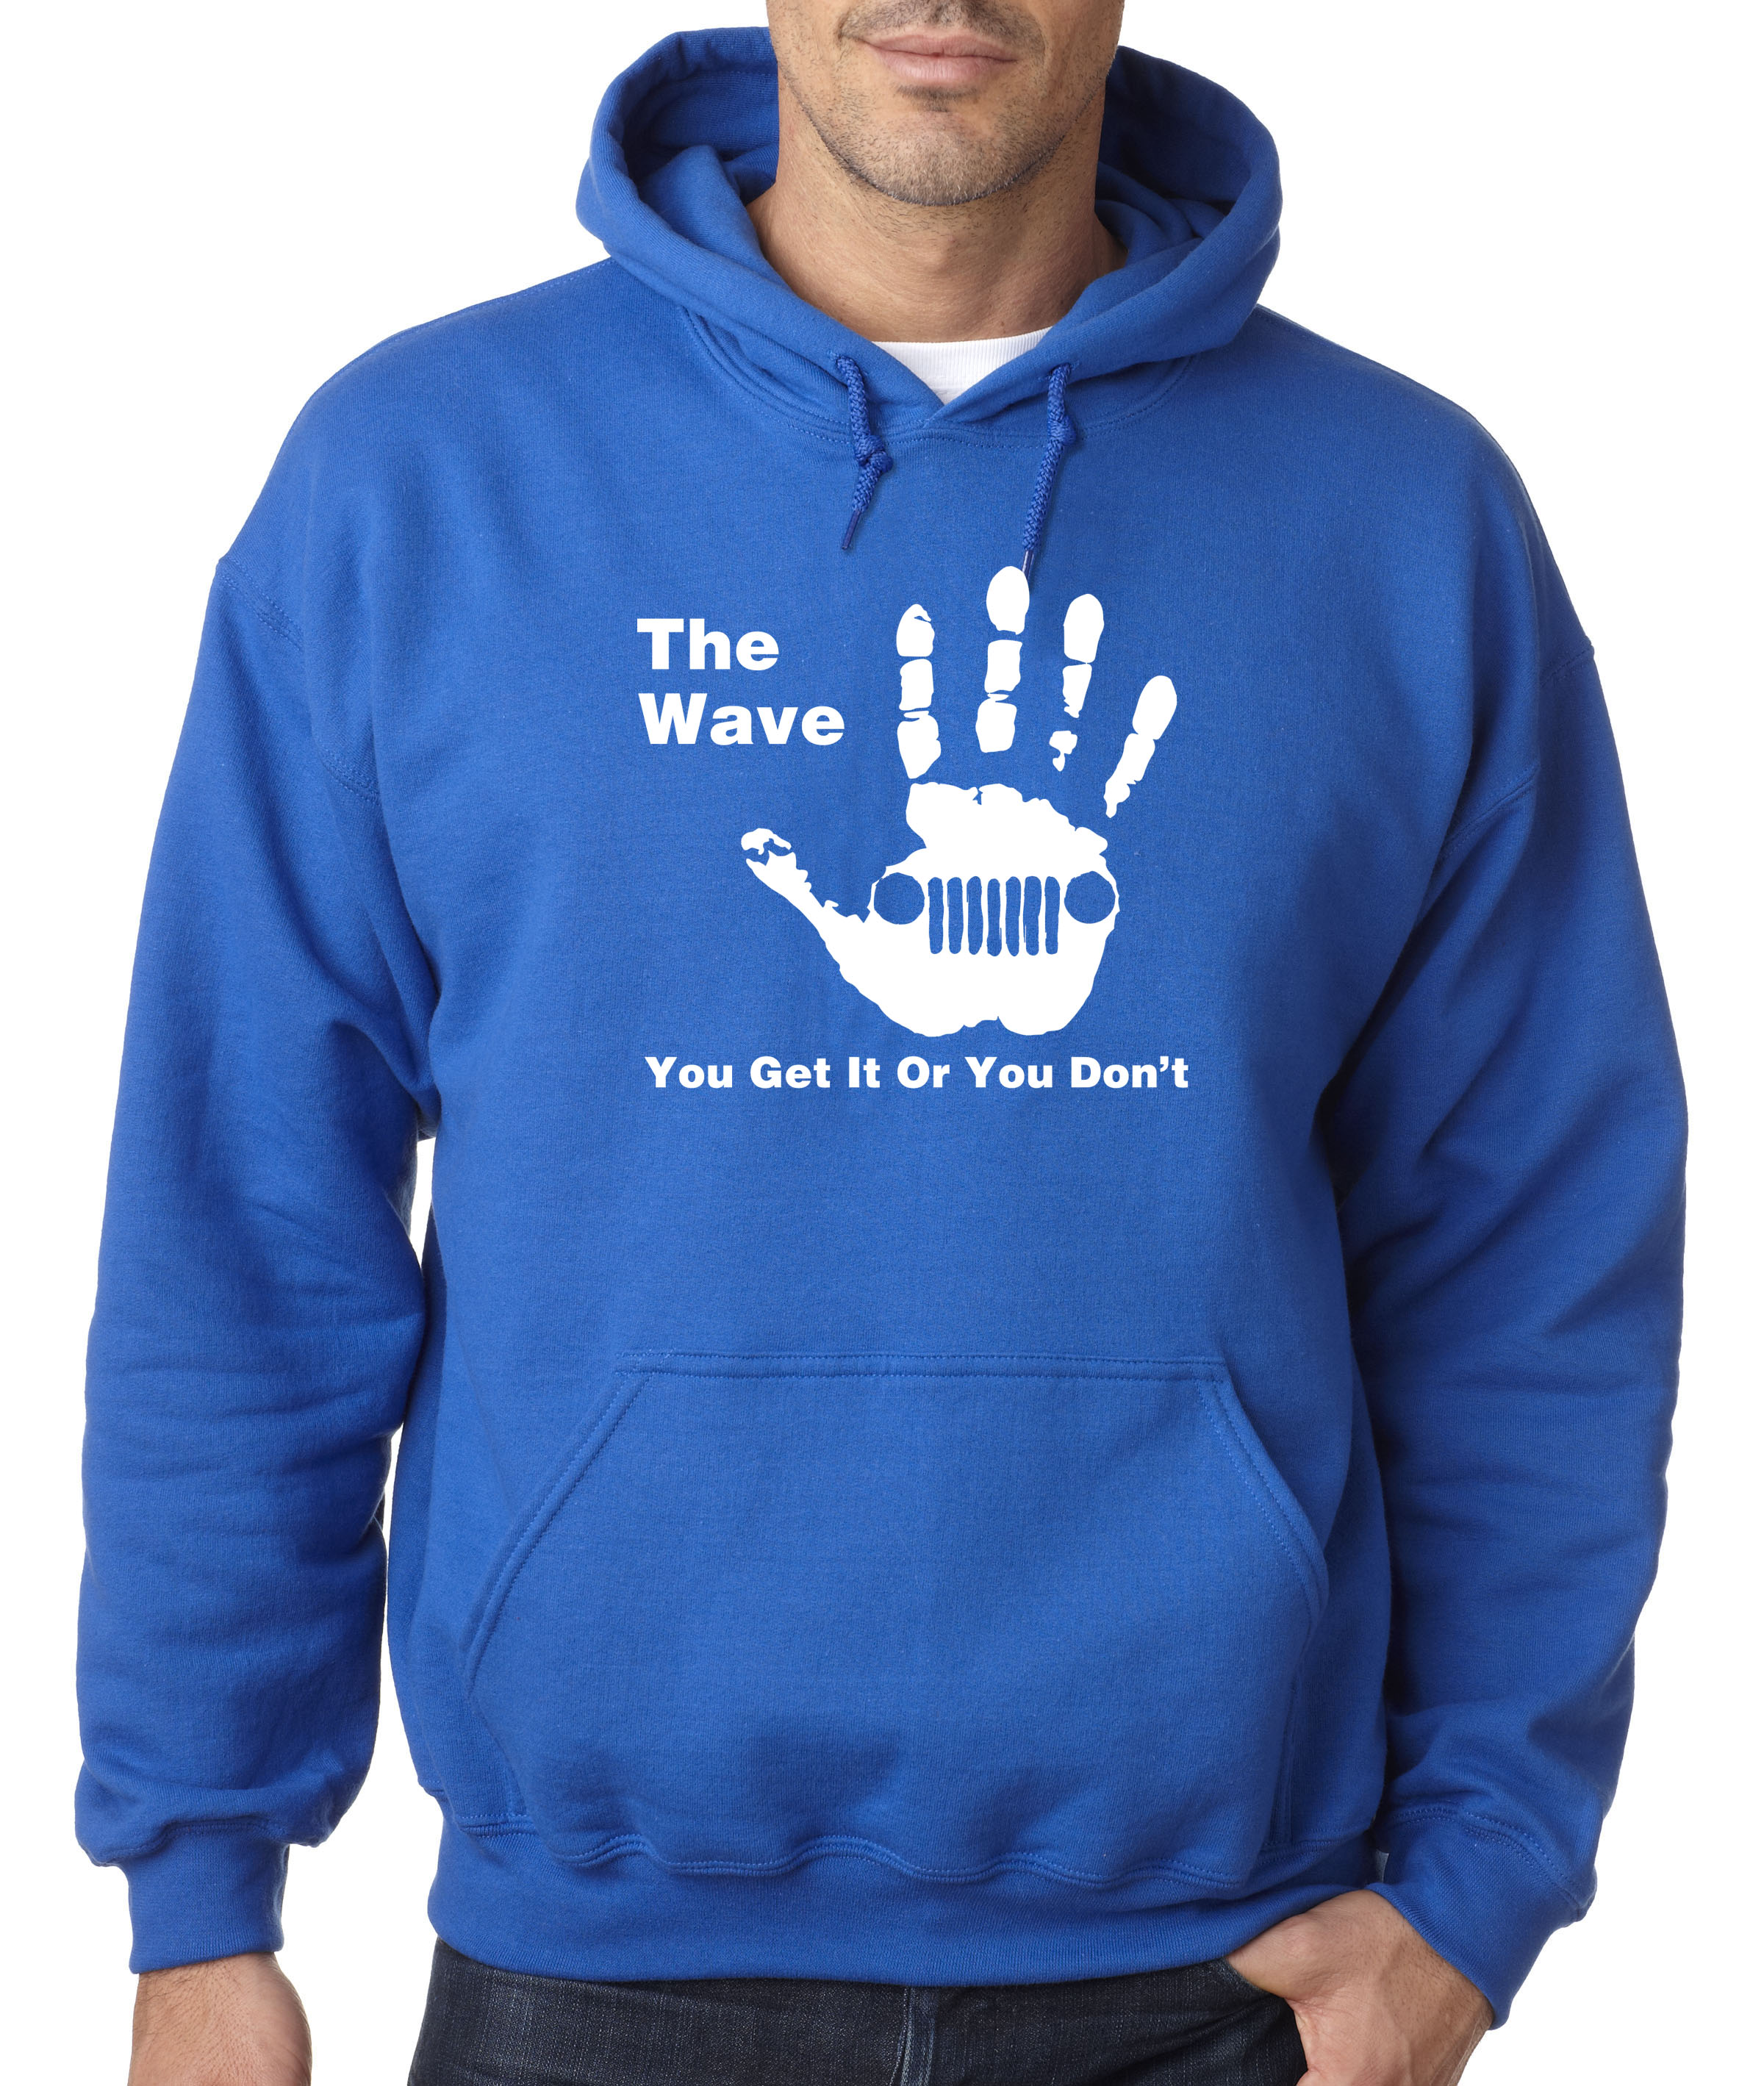 Hoodie Jeep The Wave You Get It Or You Don/'t New Way 774